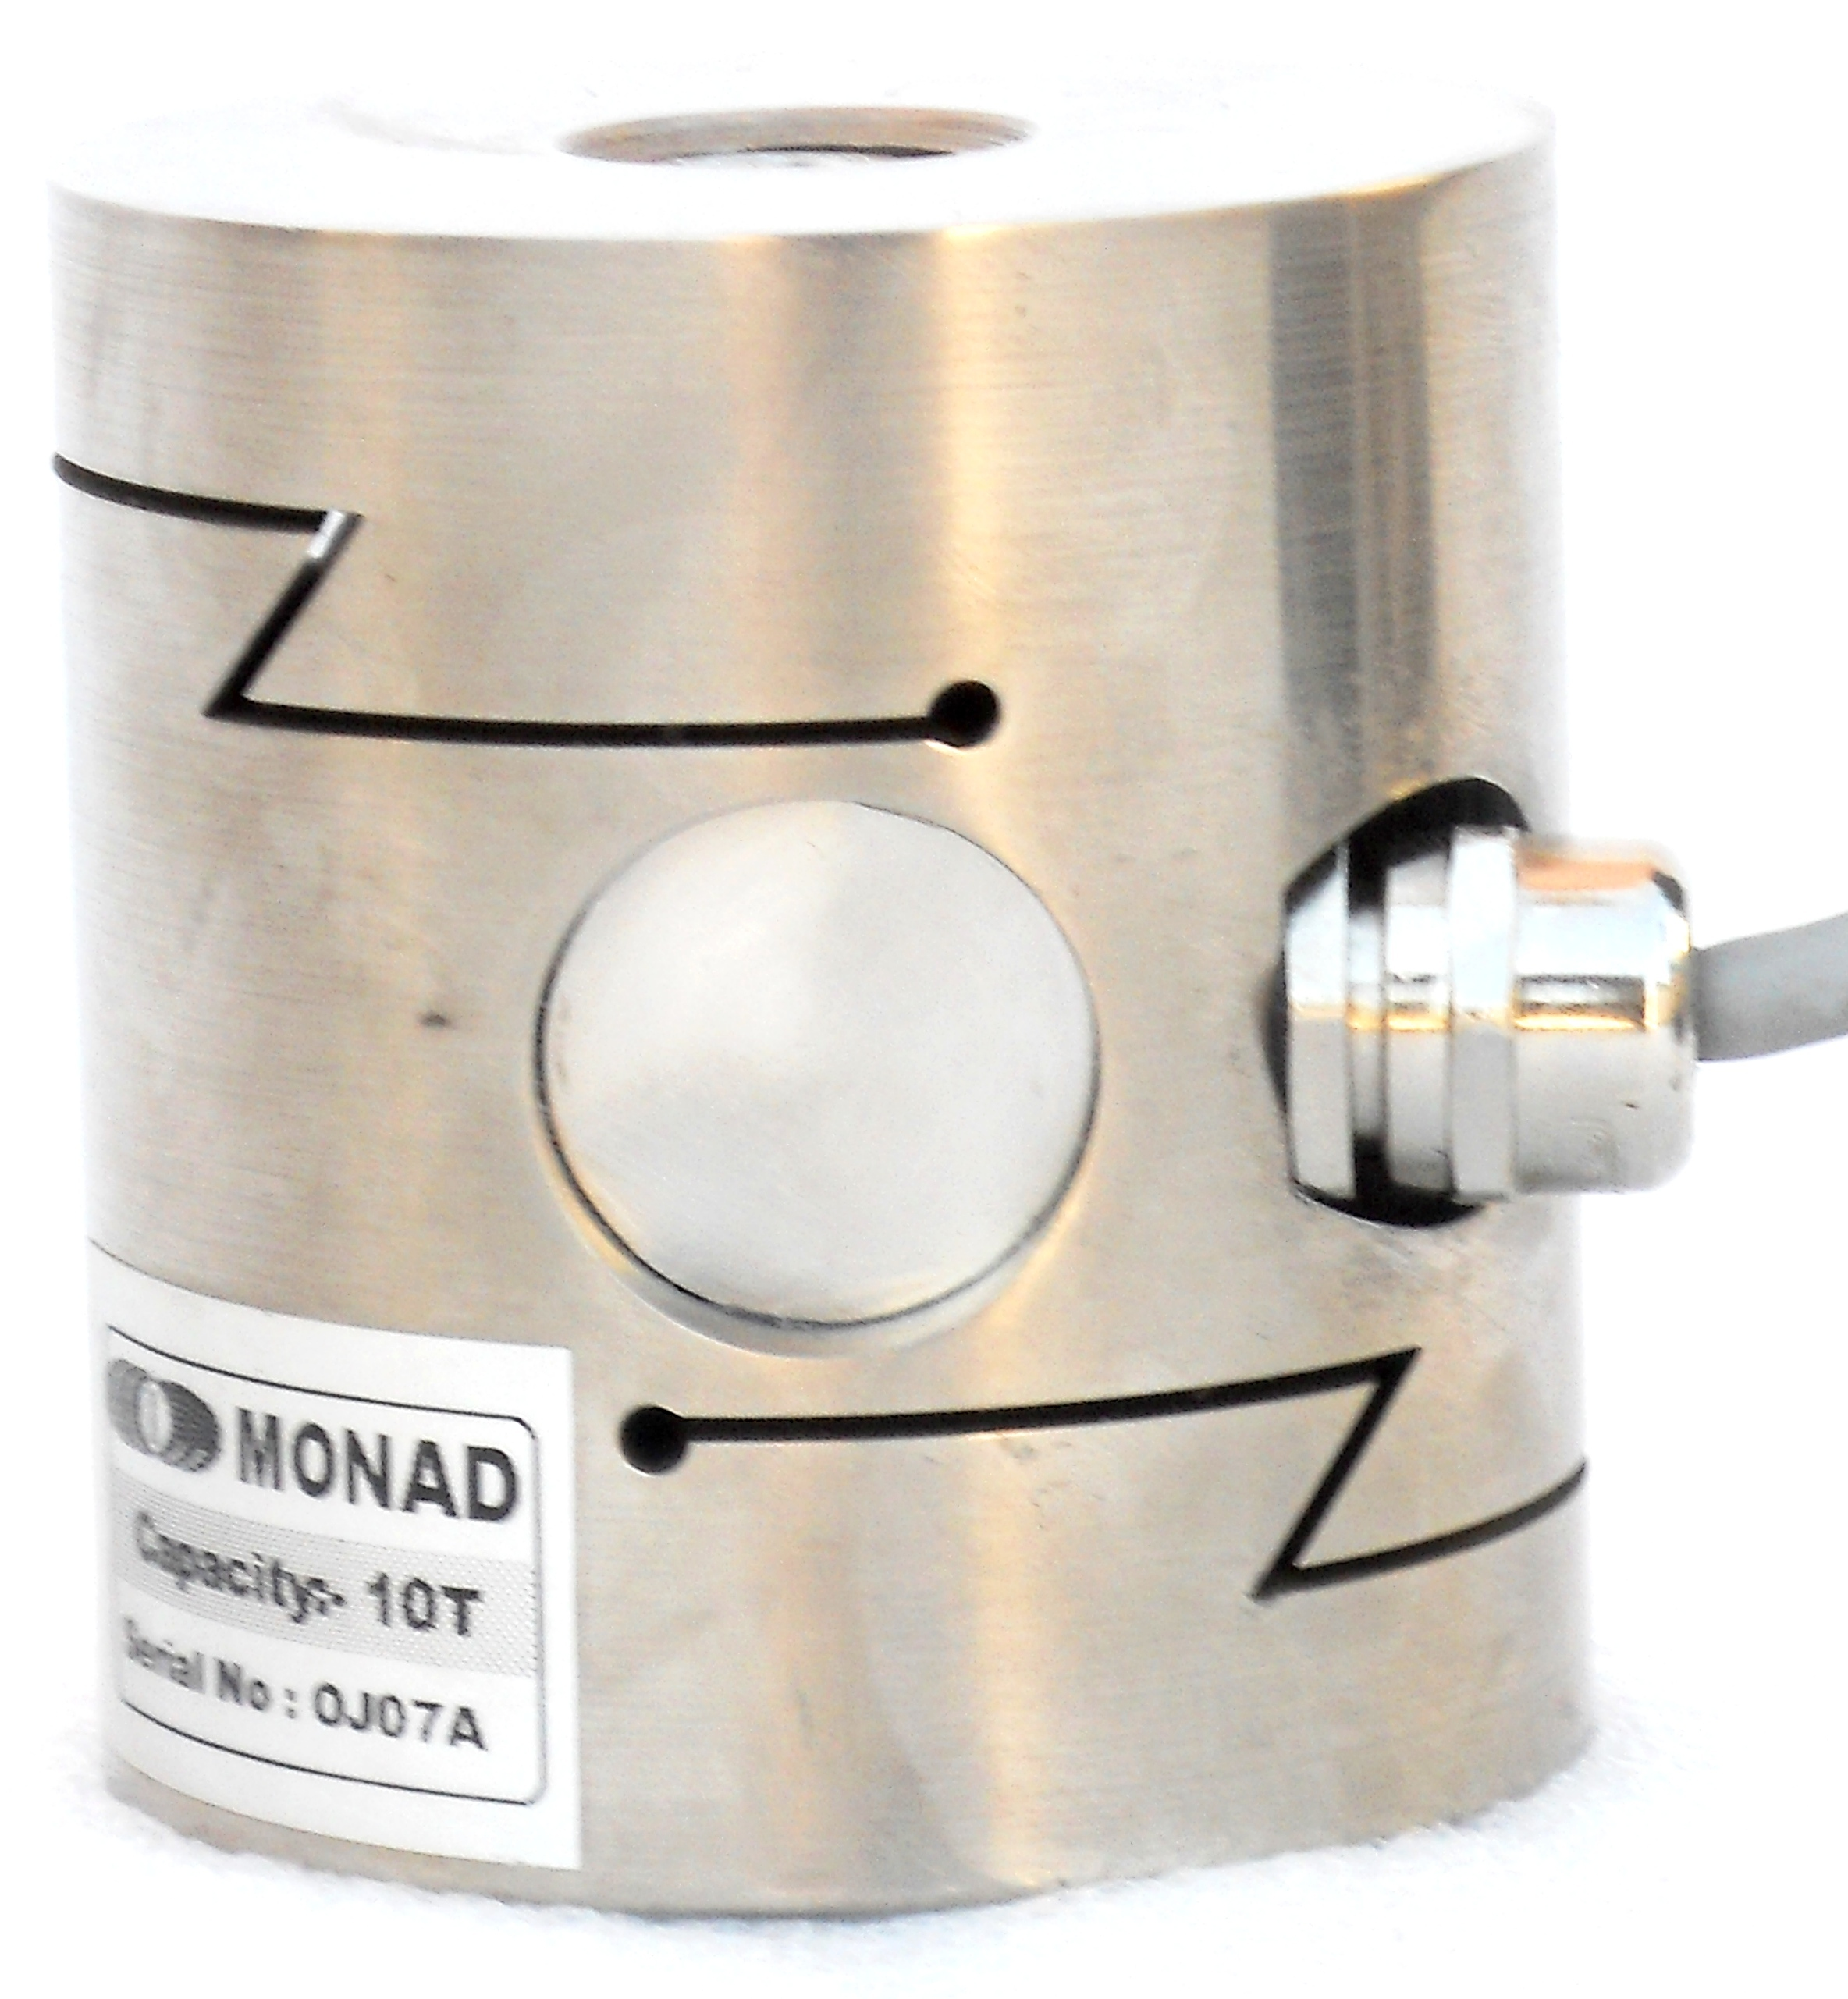 Load Sensor/ Force Sensor/ Weight Sensor